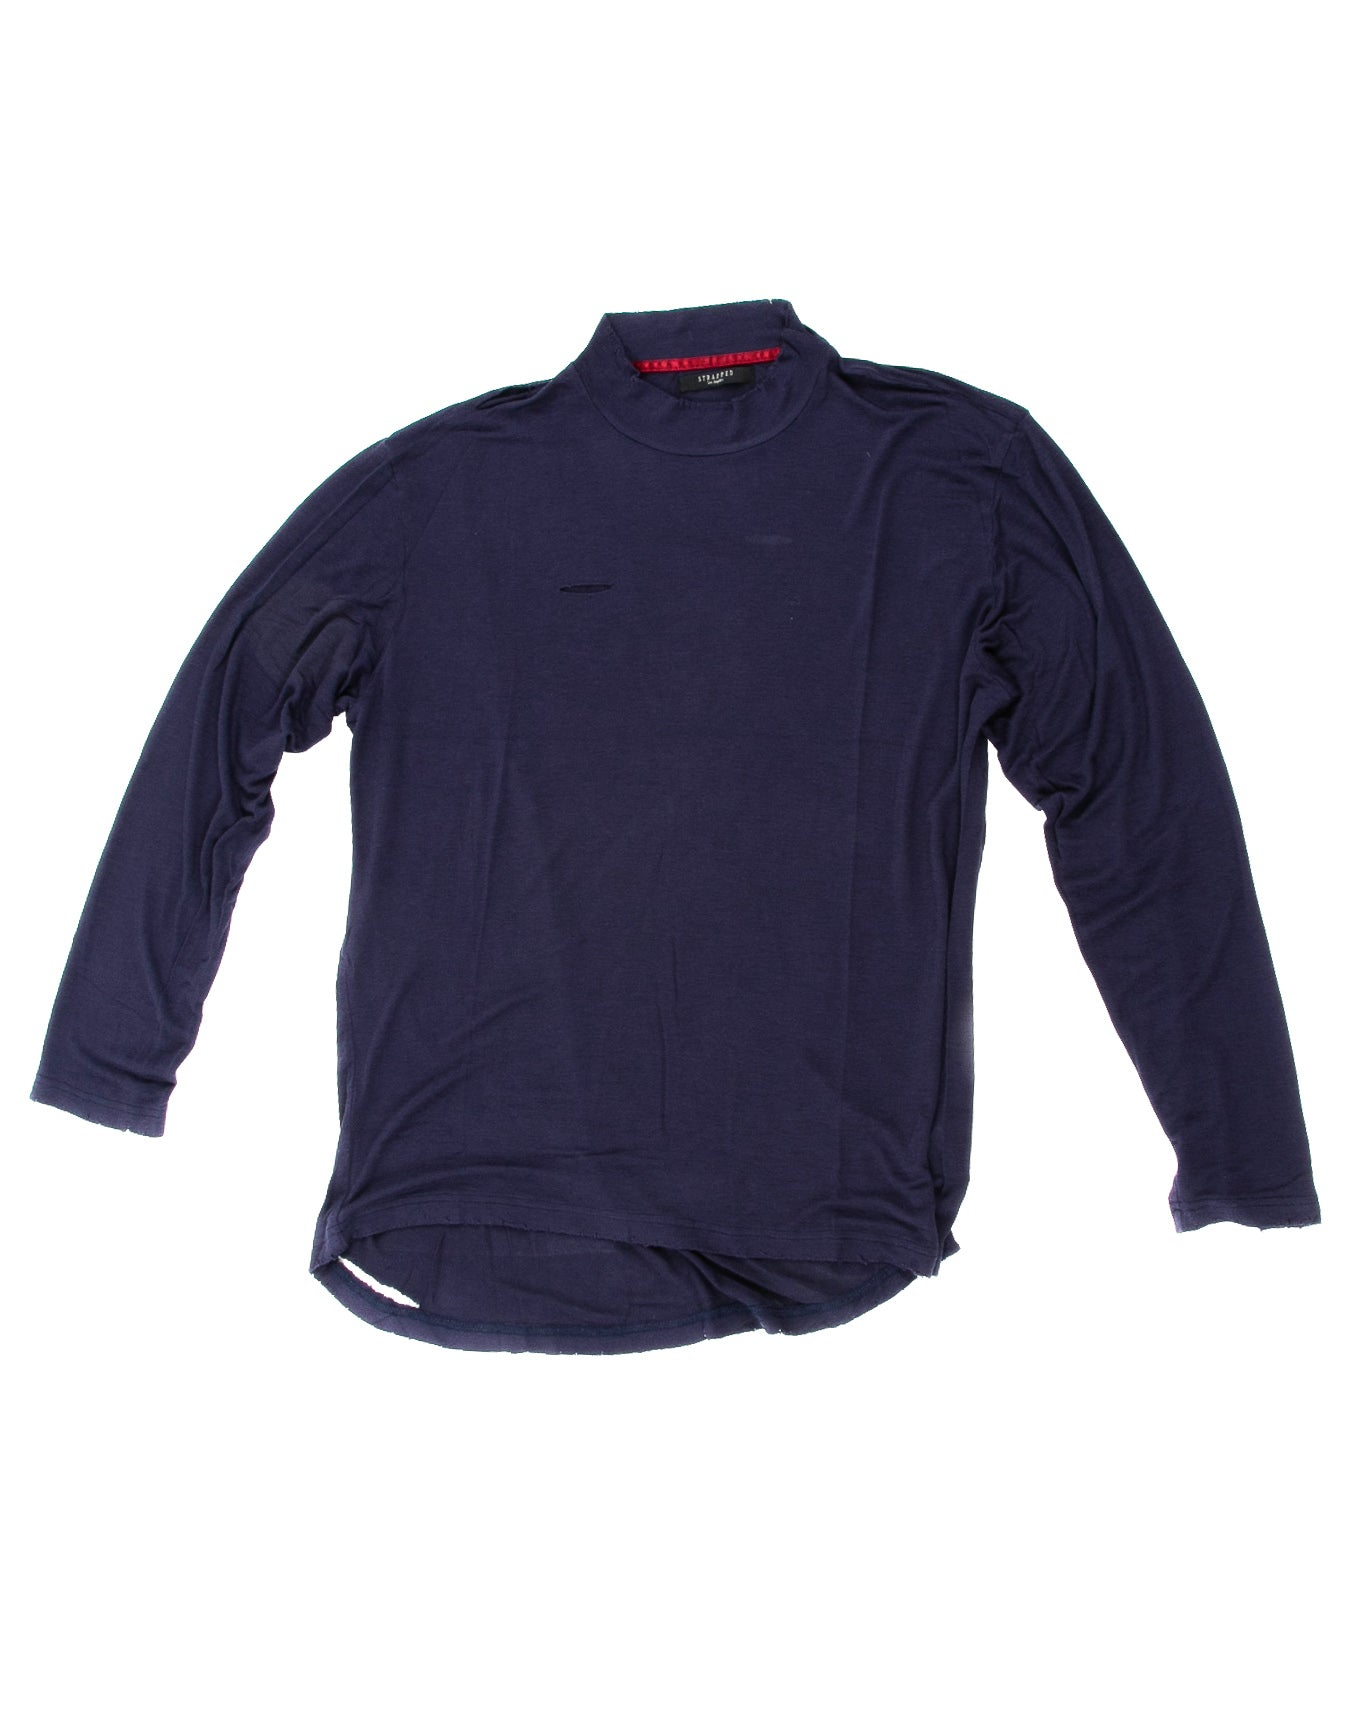 Front of Merchant Long Sleeve in Navy